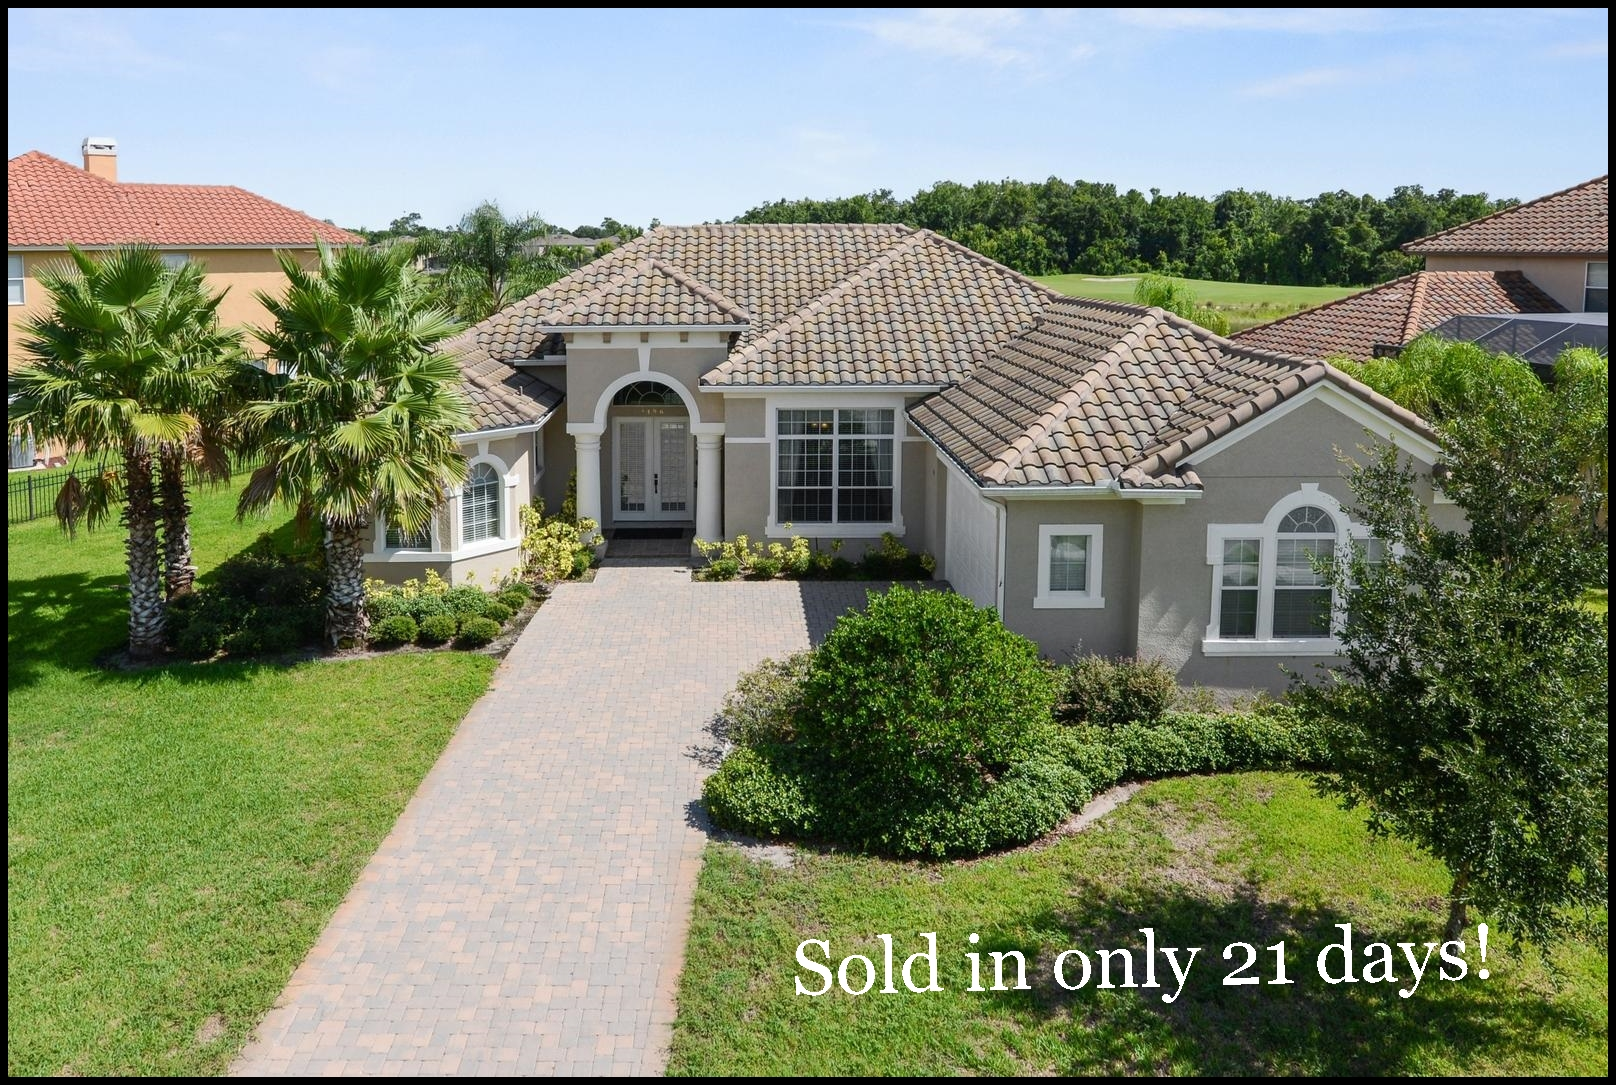 Home Sold in Providence golf community Davenport FL